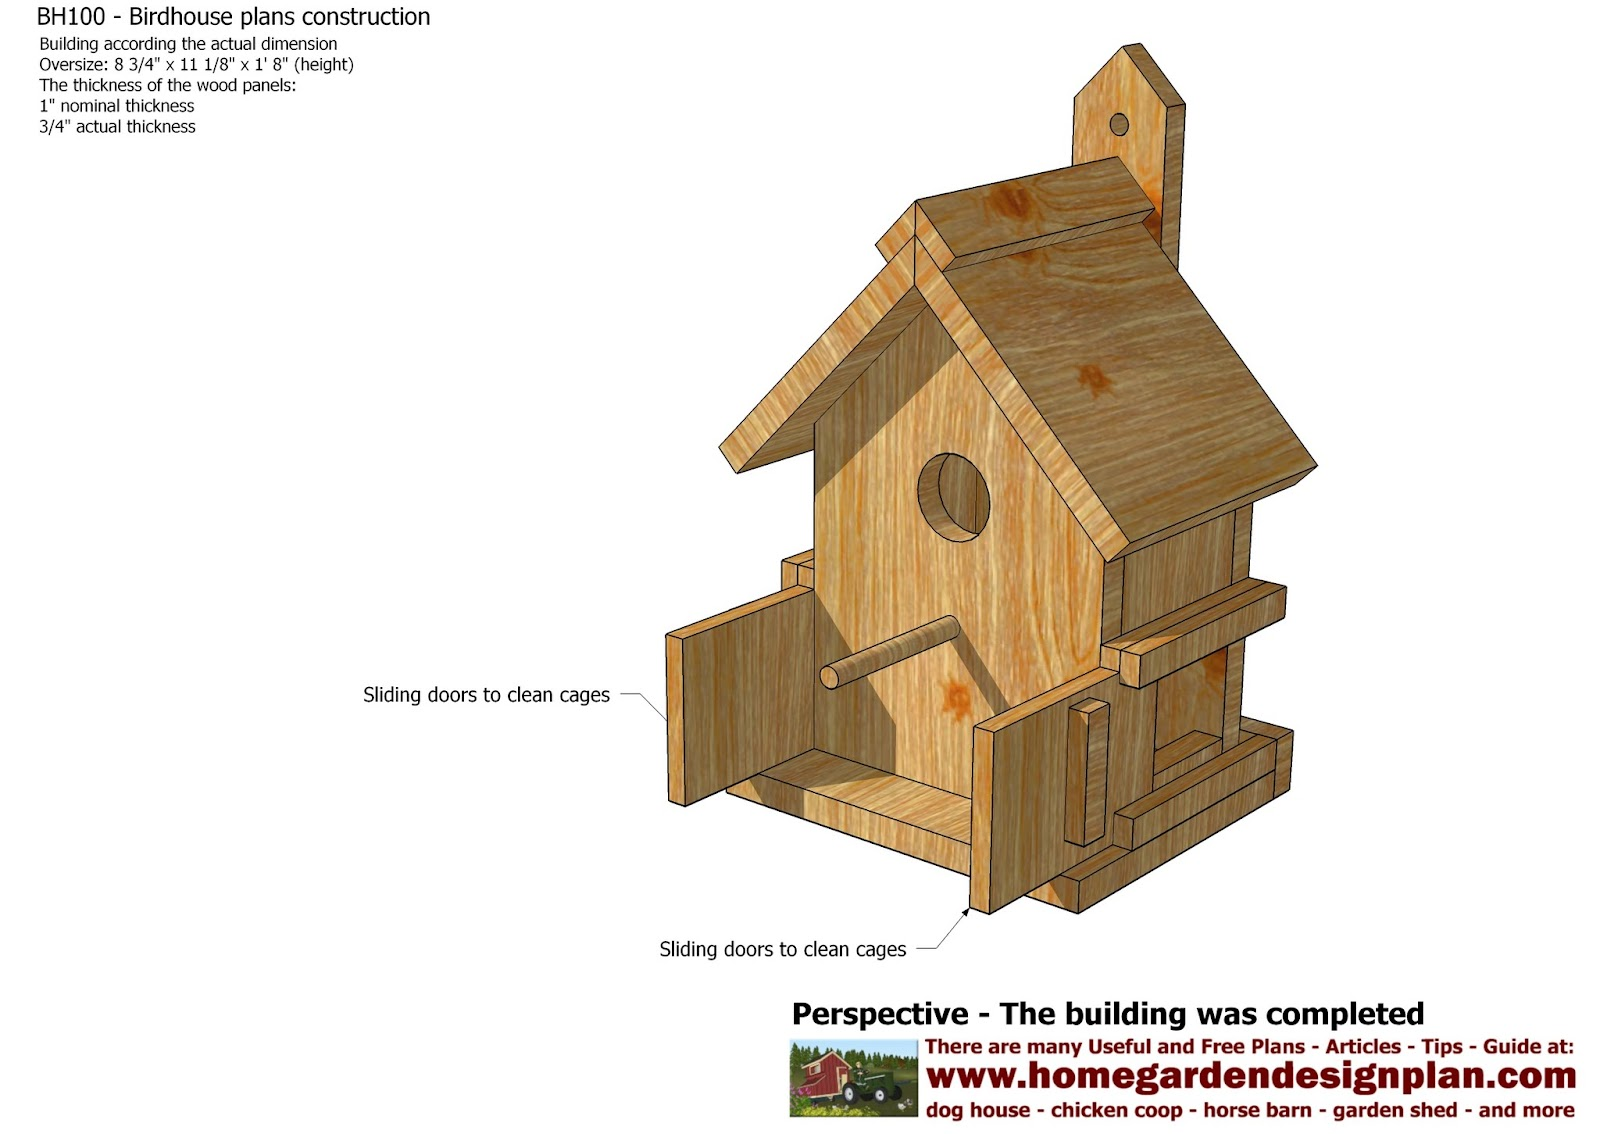 Pdf diy buy birdhouse plans download birch ply wood Buy building plans